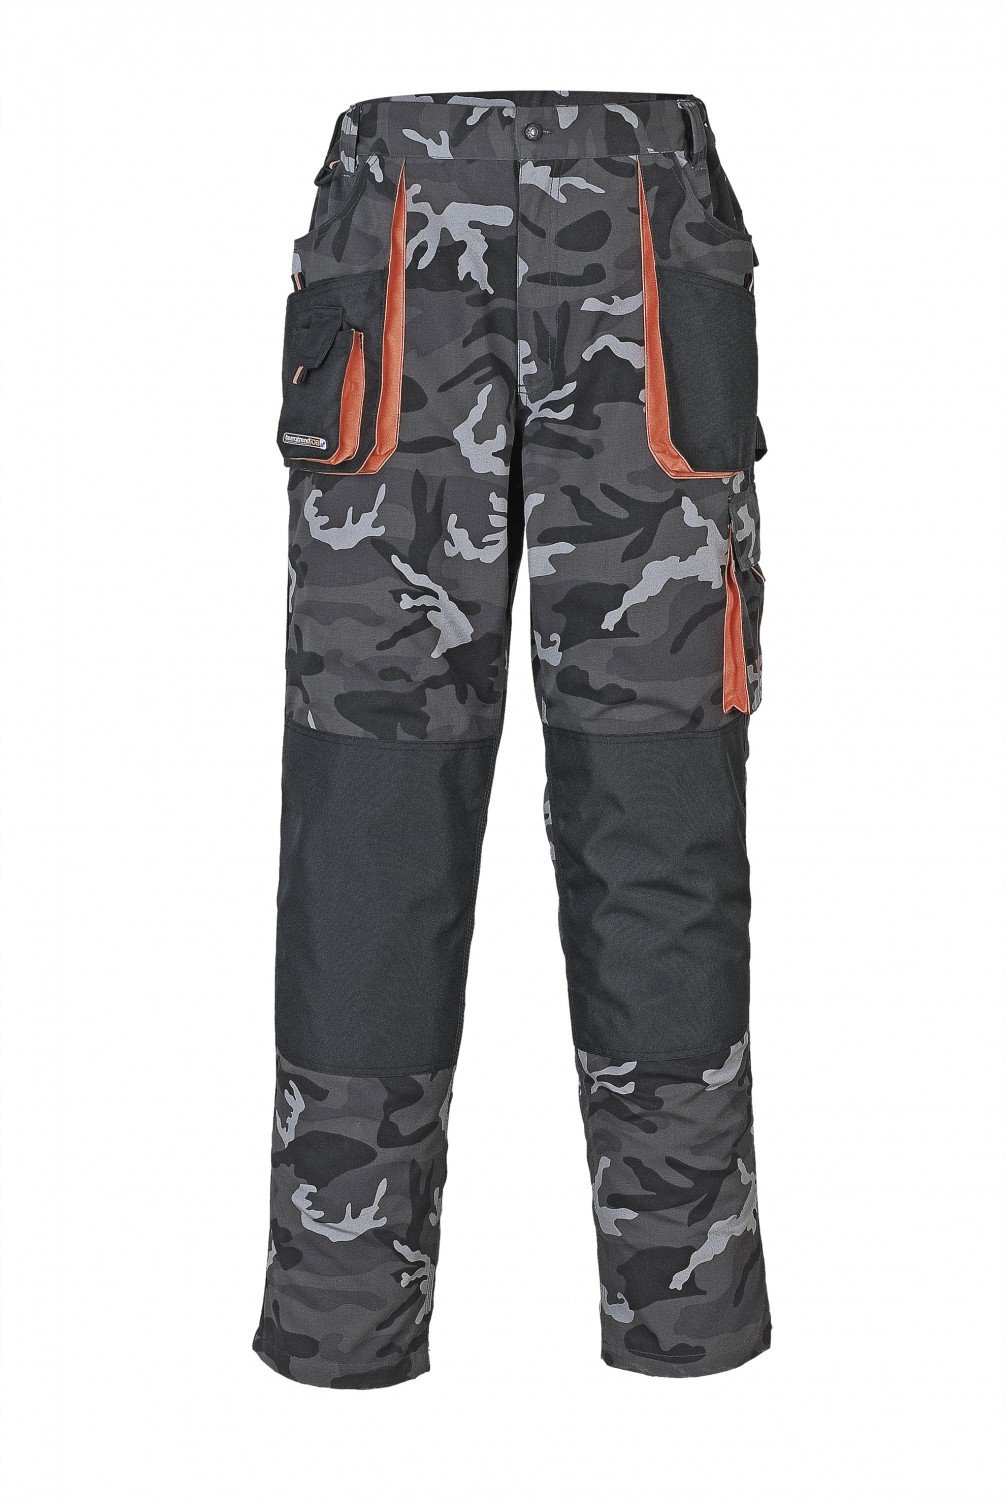 Terratrend Job 3230-64-6210 Size 64 Men's-Trousers - Camouflage/Grey/Black